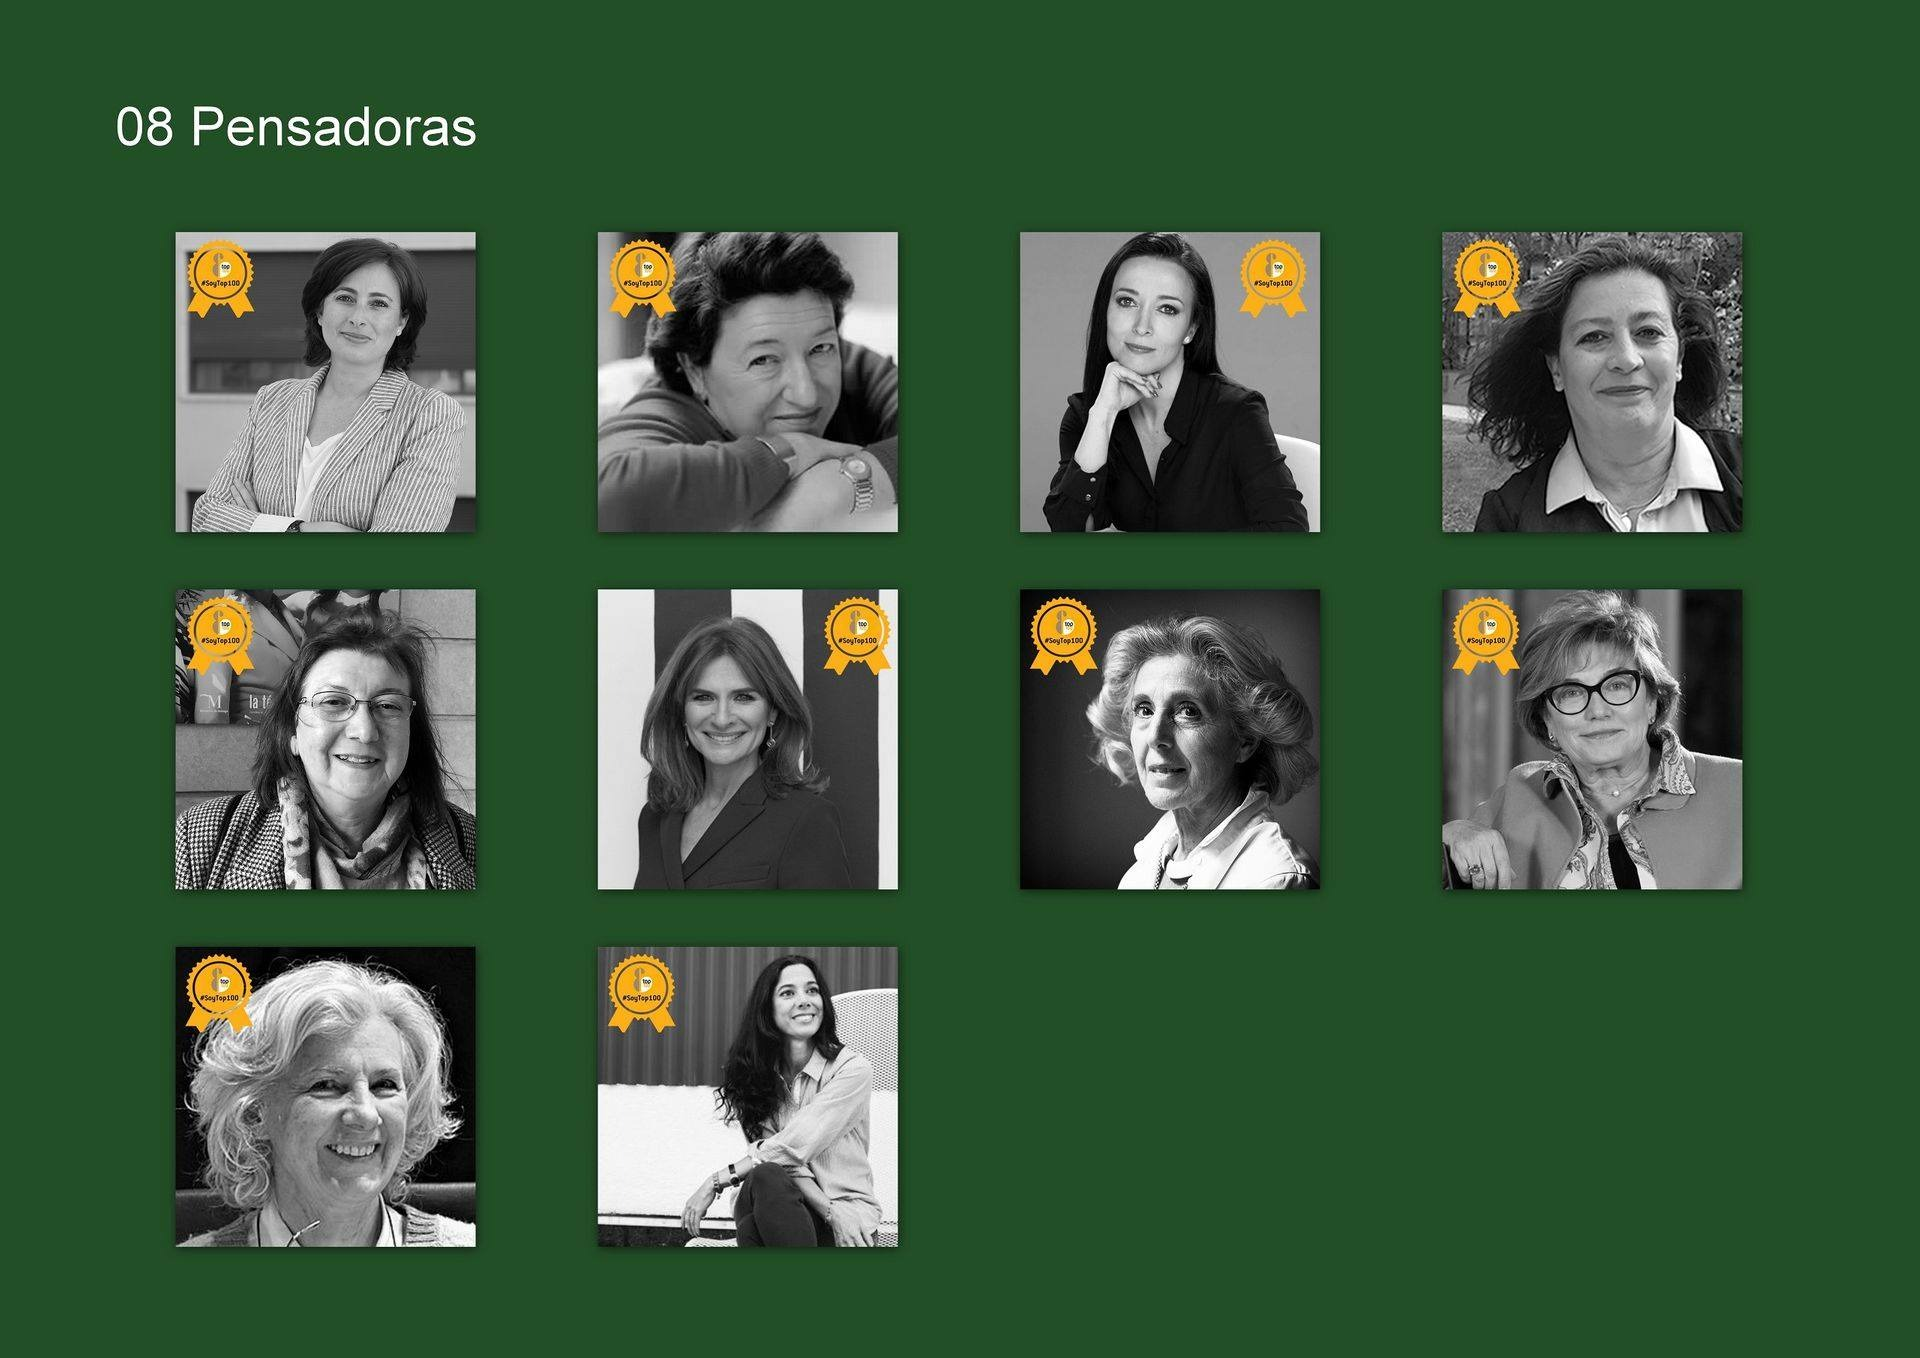 Women awarded in the category of thinkers